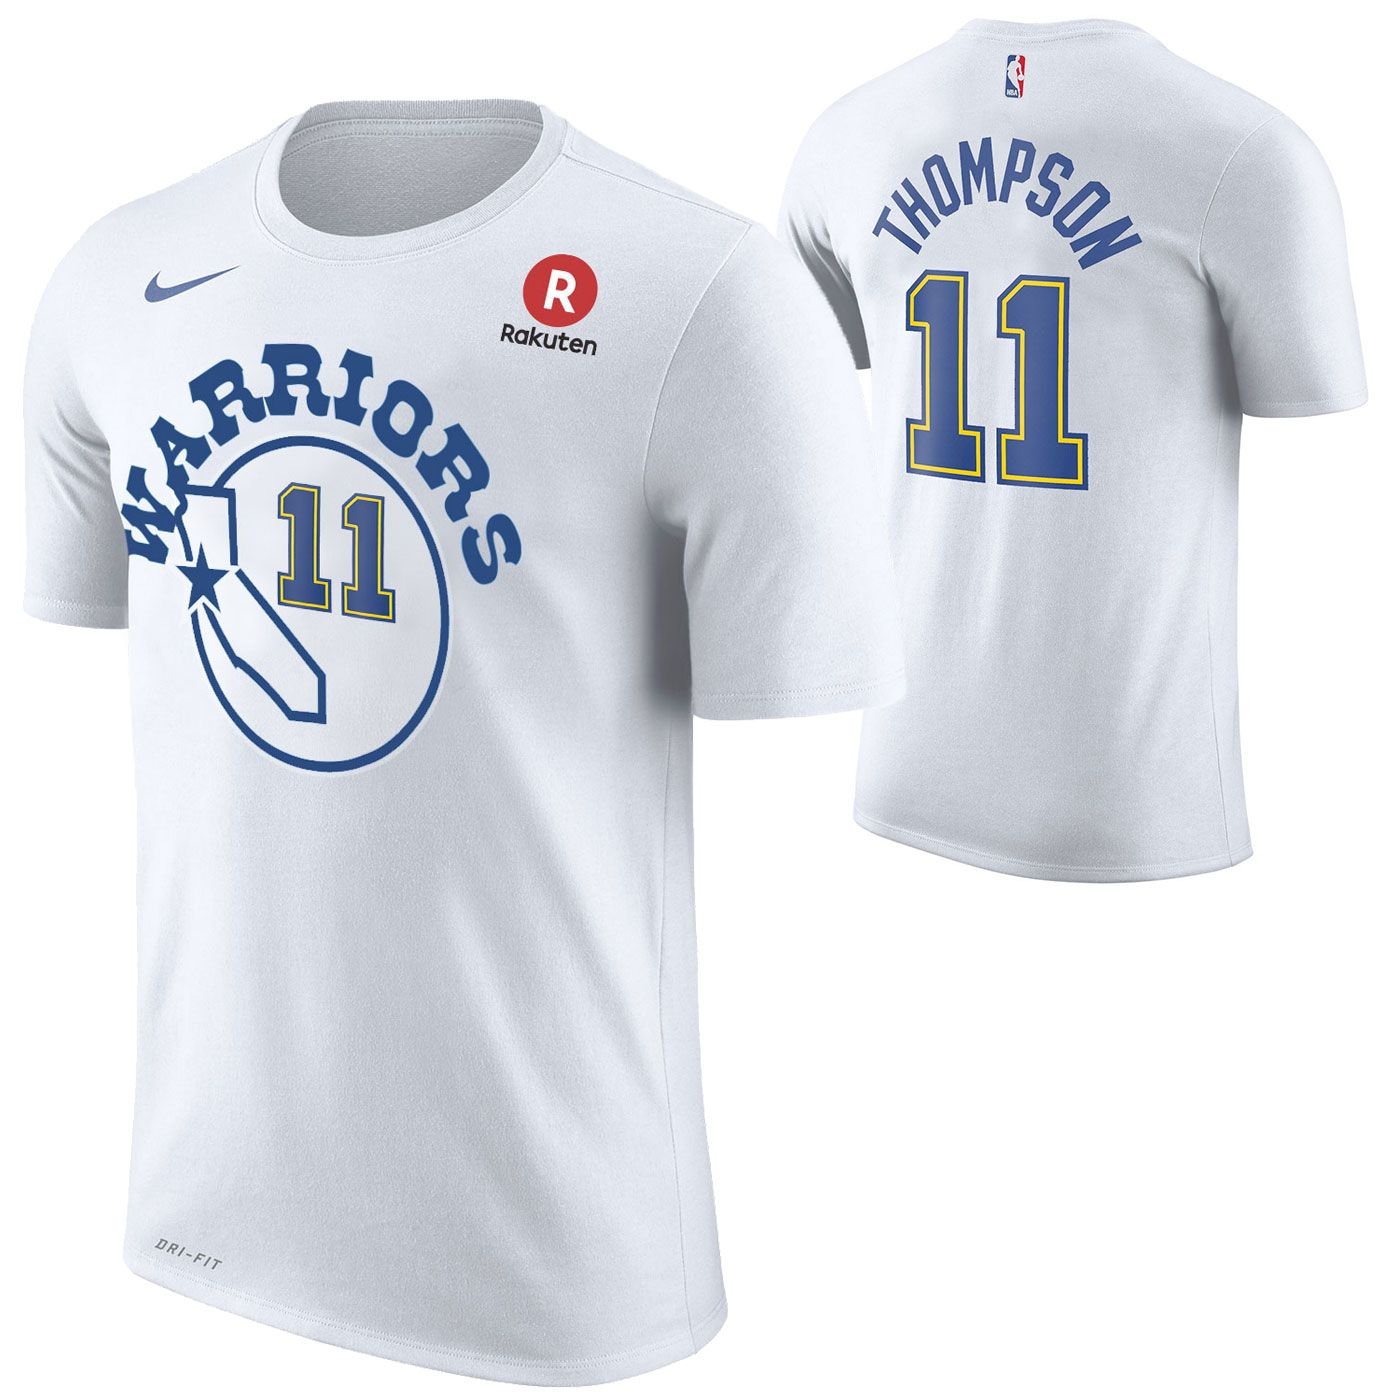 Golden State Warriors Nike Dri-FIT Men s Hardwood Classic Klay Thompson  11  Game Time Name   Number Tee - White 566164507